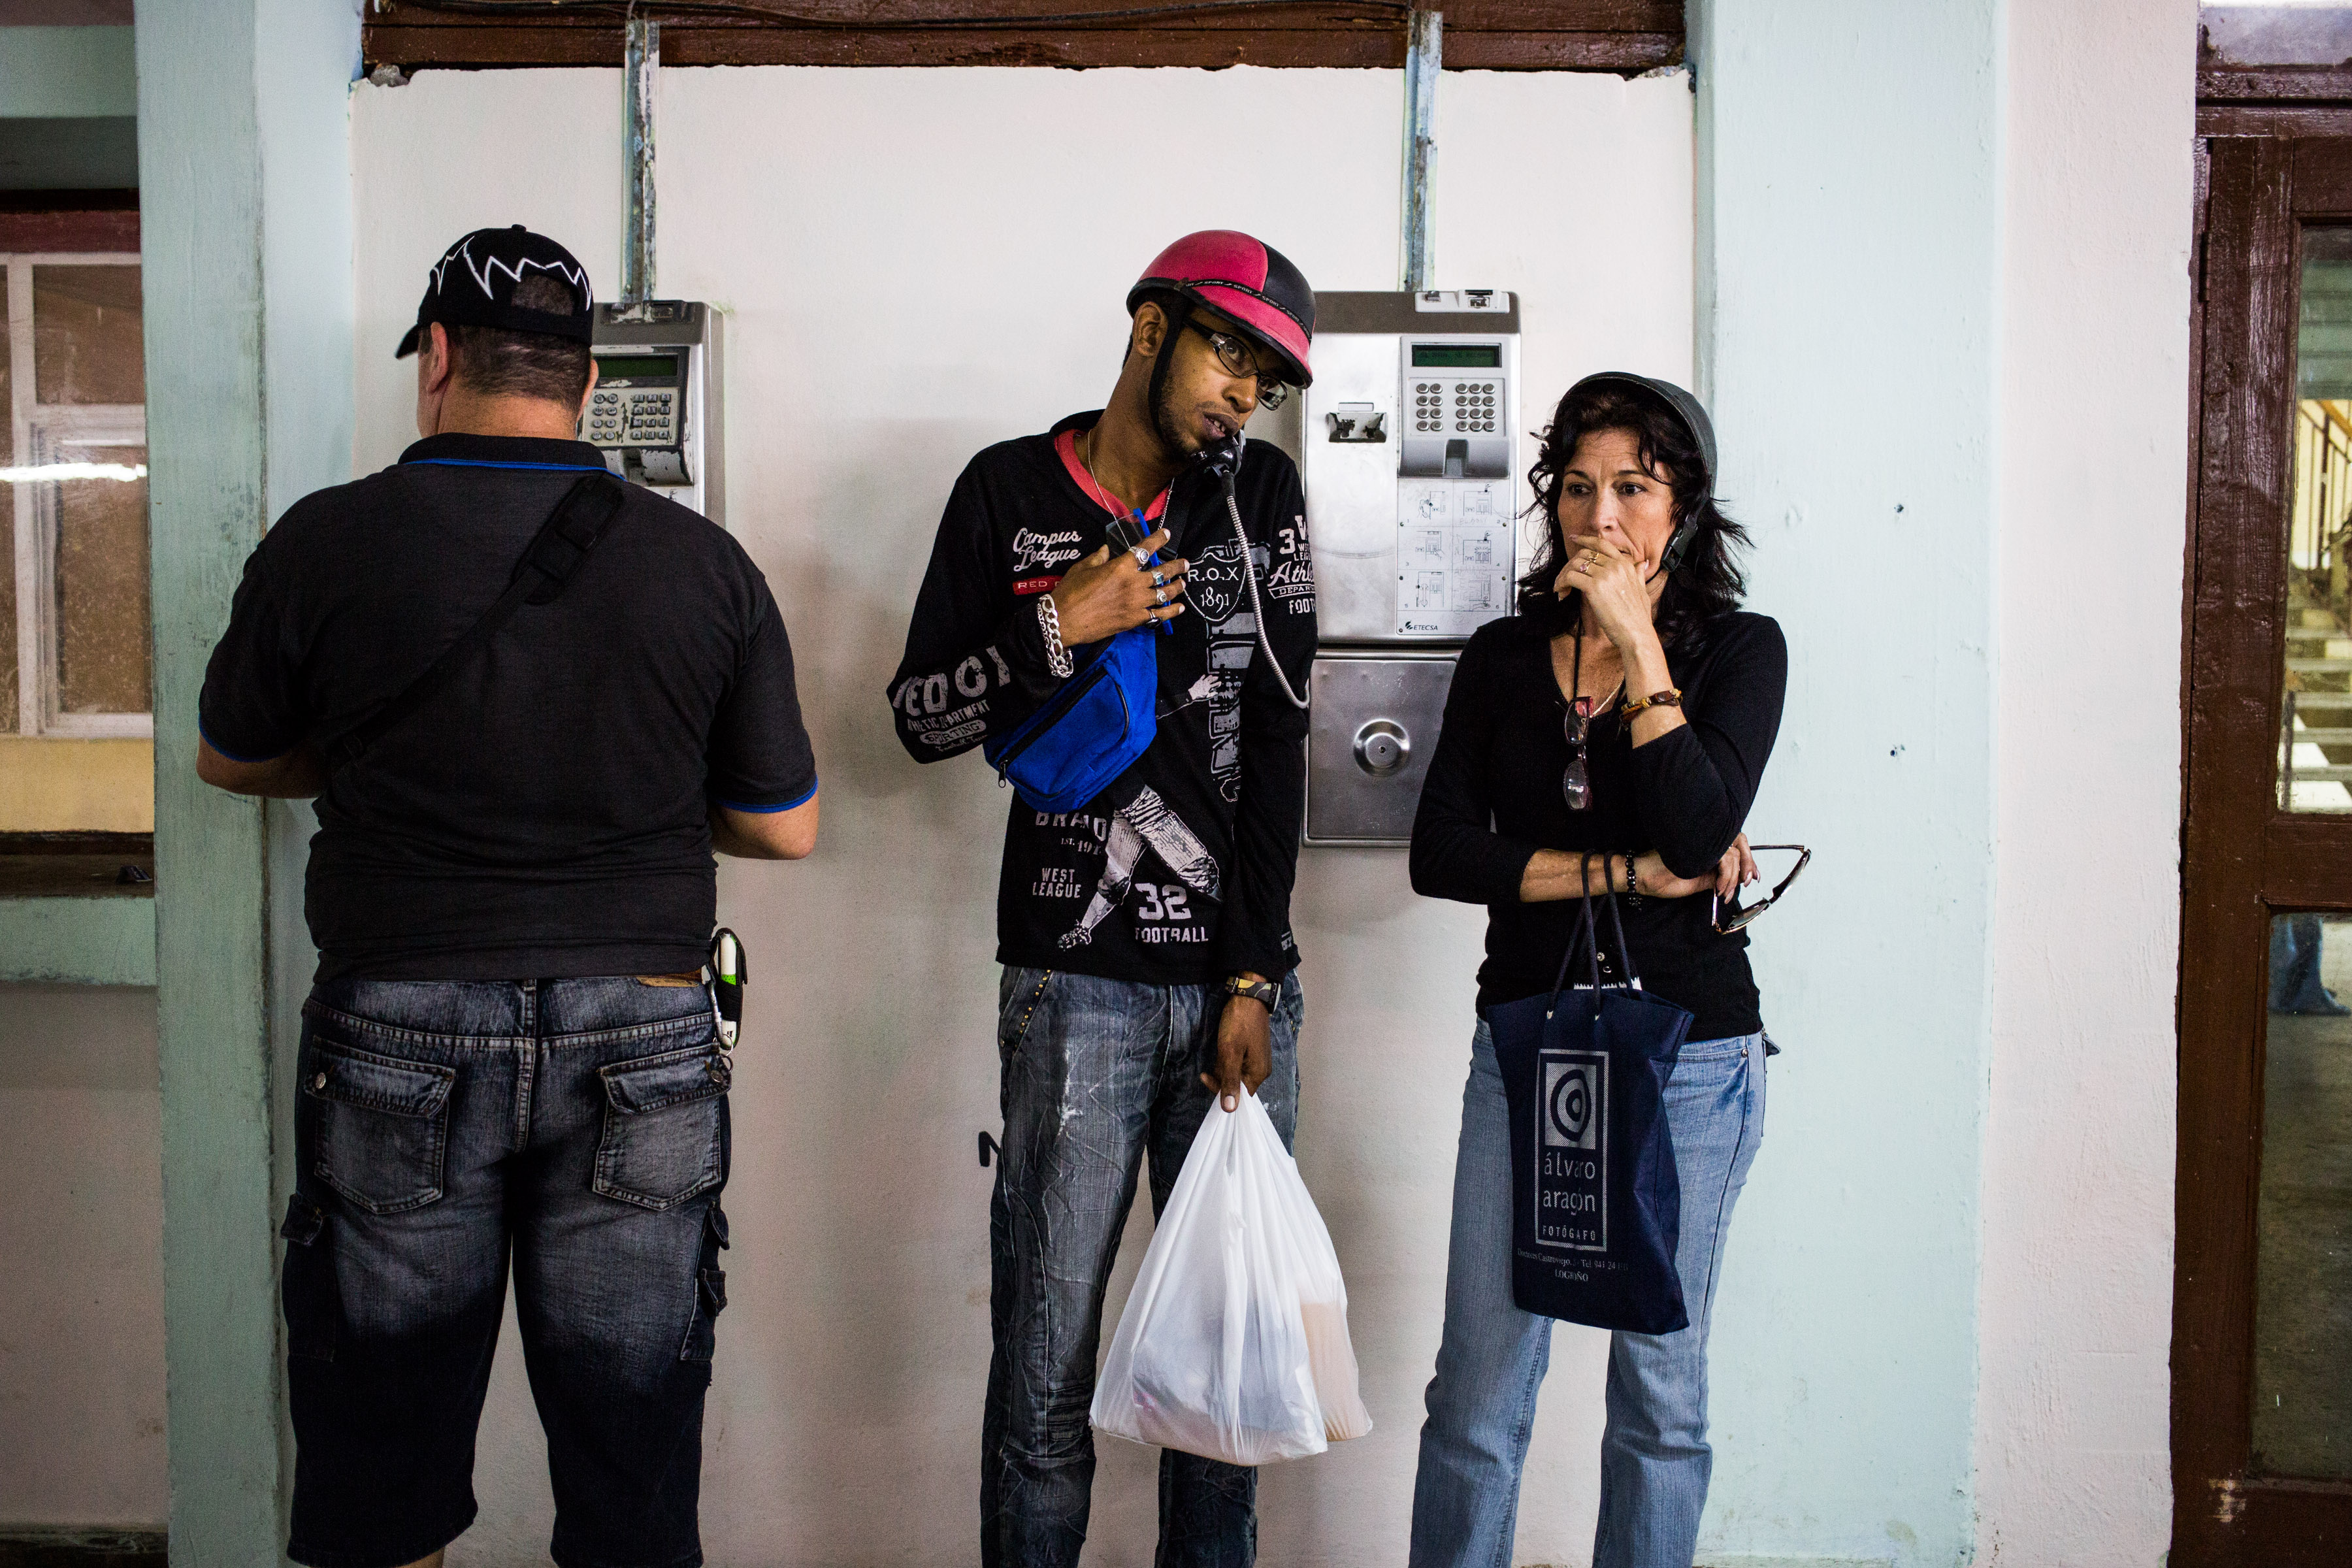 ALAMAR, CUBA - DECEMBER 19 - Alberto Garcia Rivera (center) talks on a payphone at the Falcon shopping center, Alamar.